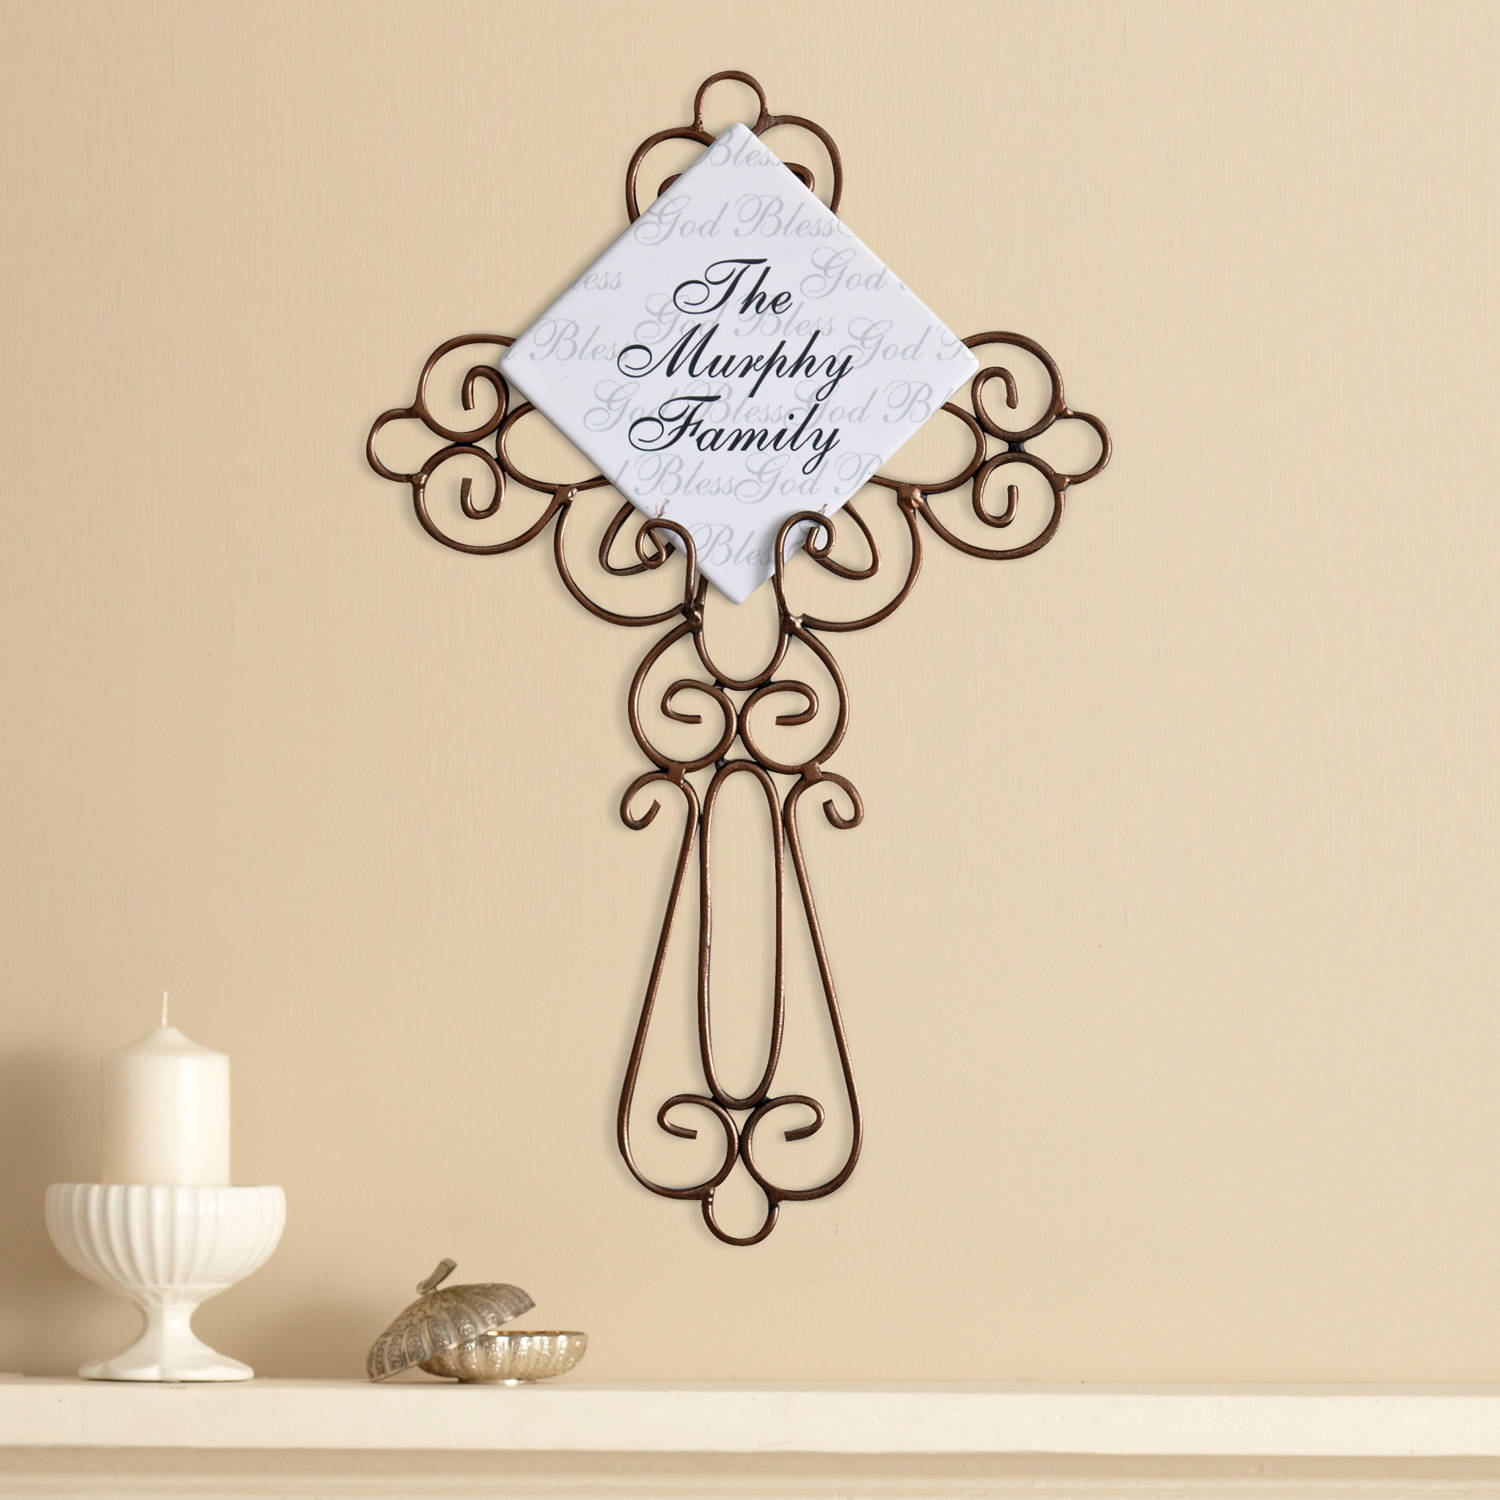 Wall decor walmart personalized god bless wrought iron cross amipublicfo Choice Image